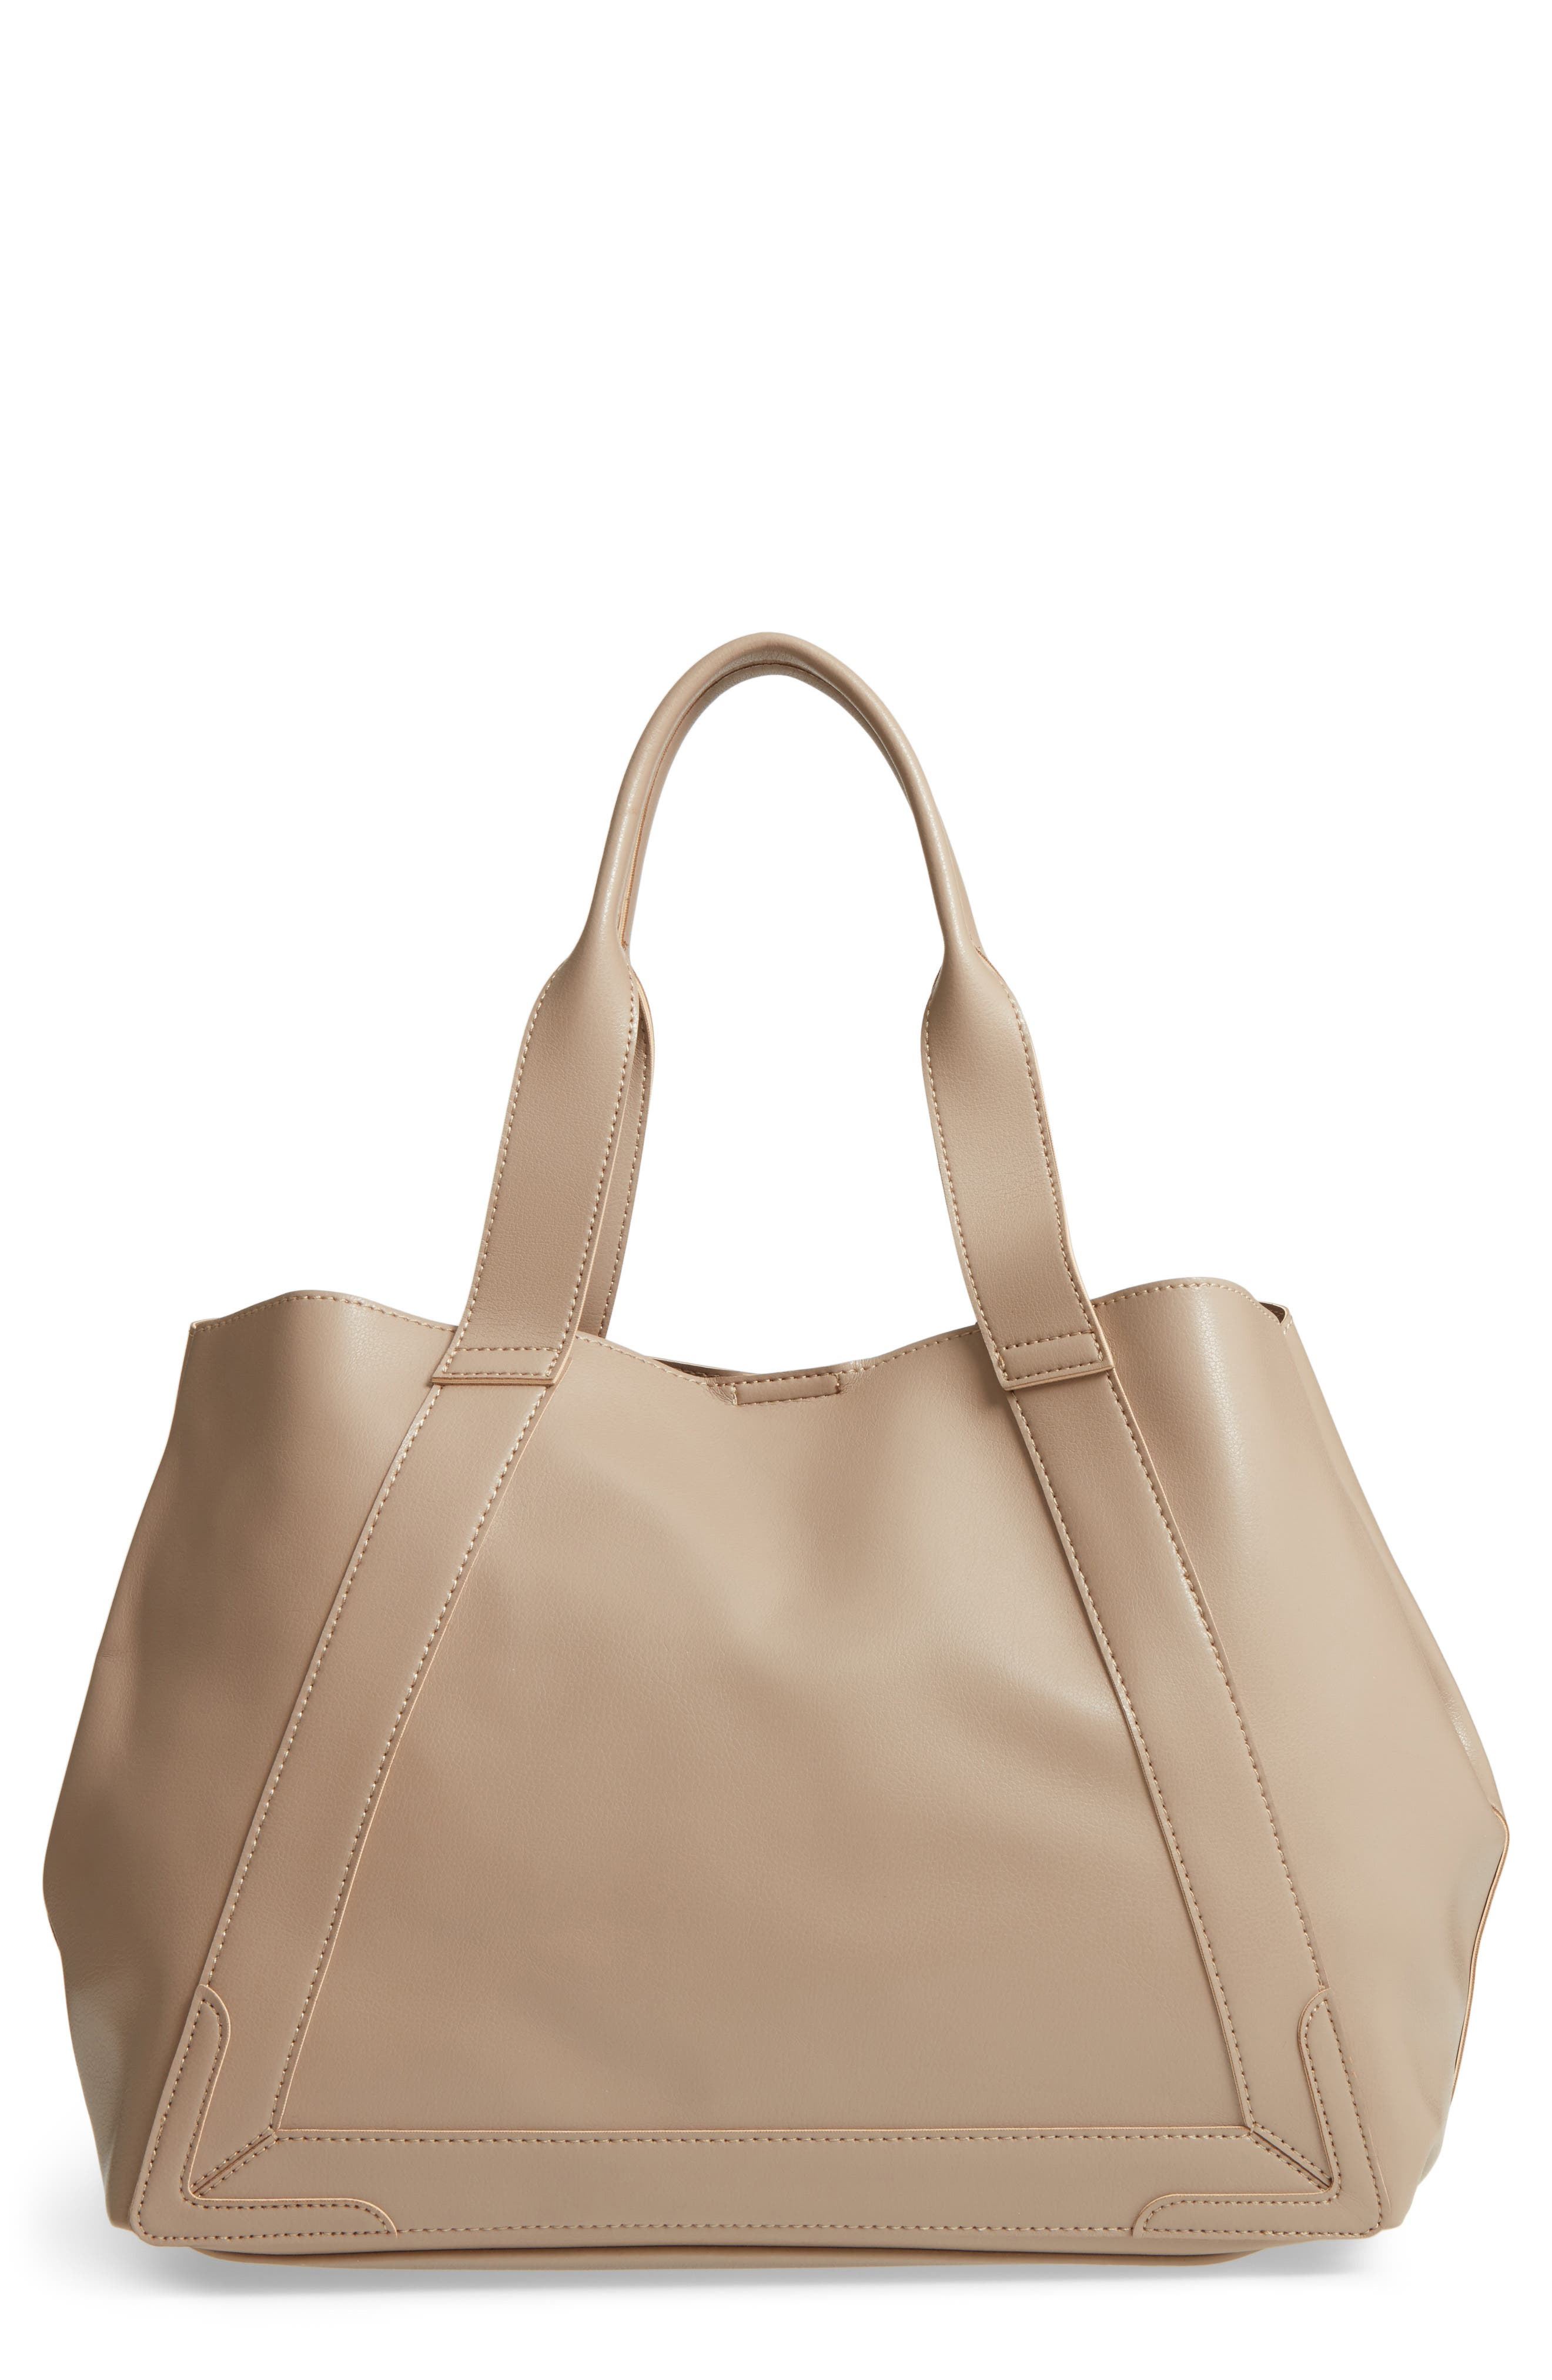 Decklan Faux Leather Tote,                             Main thumbnail 1, color,                             250